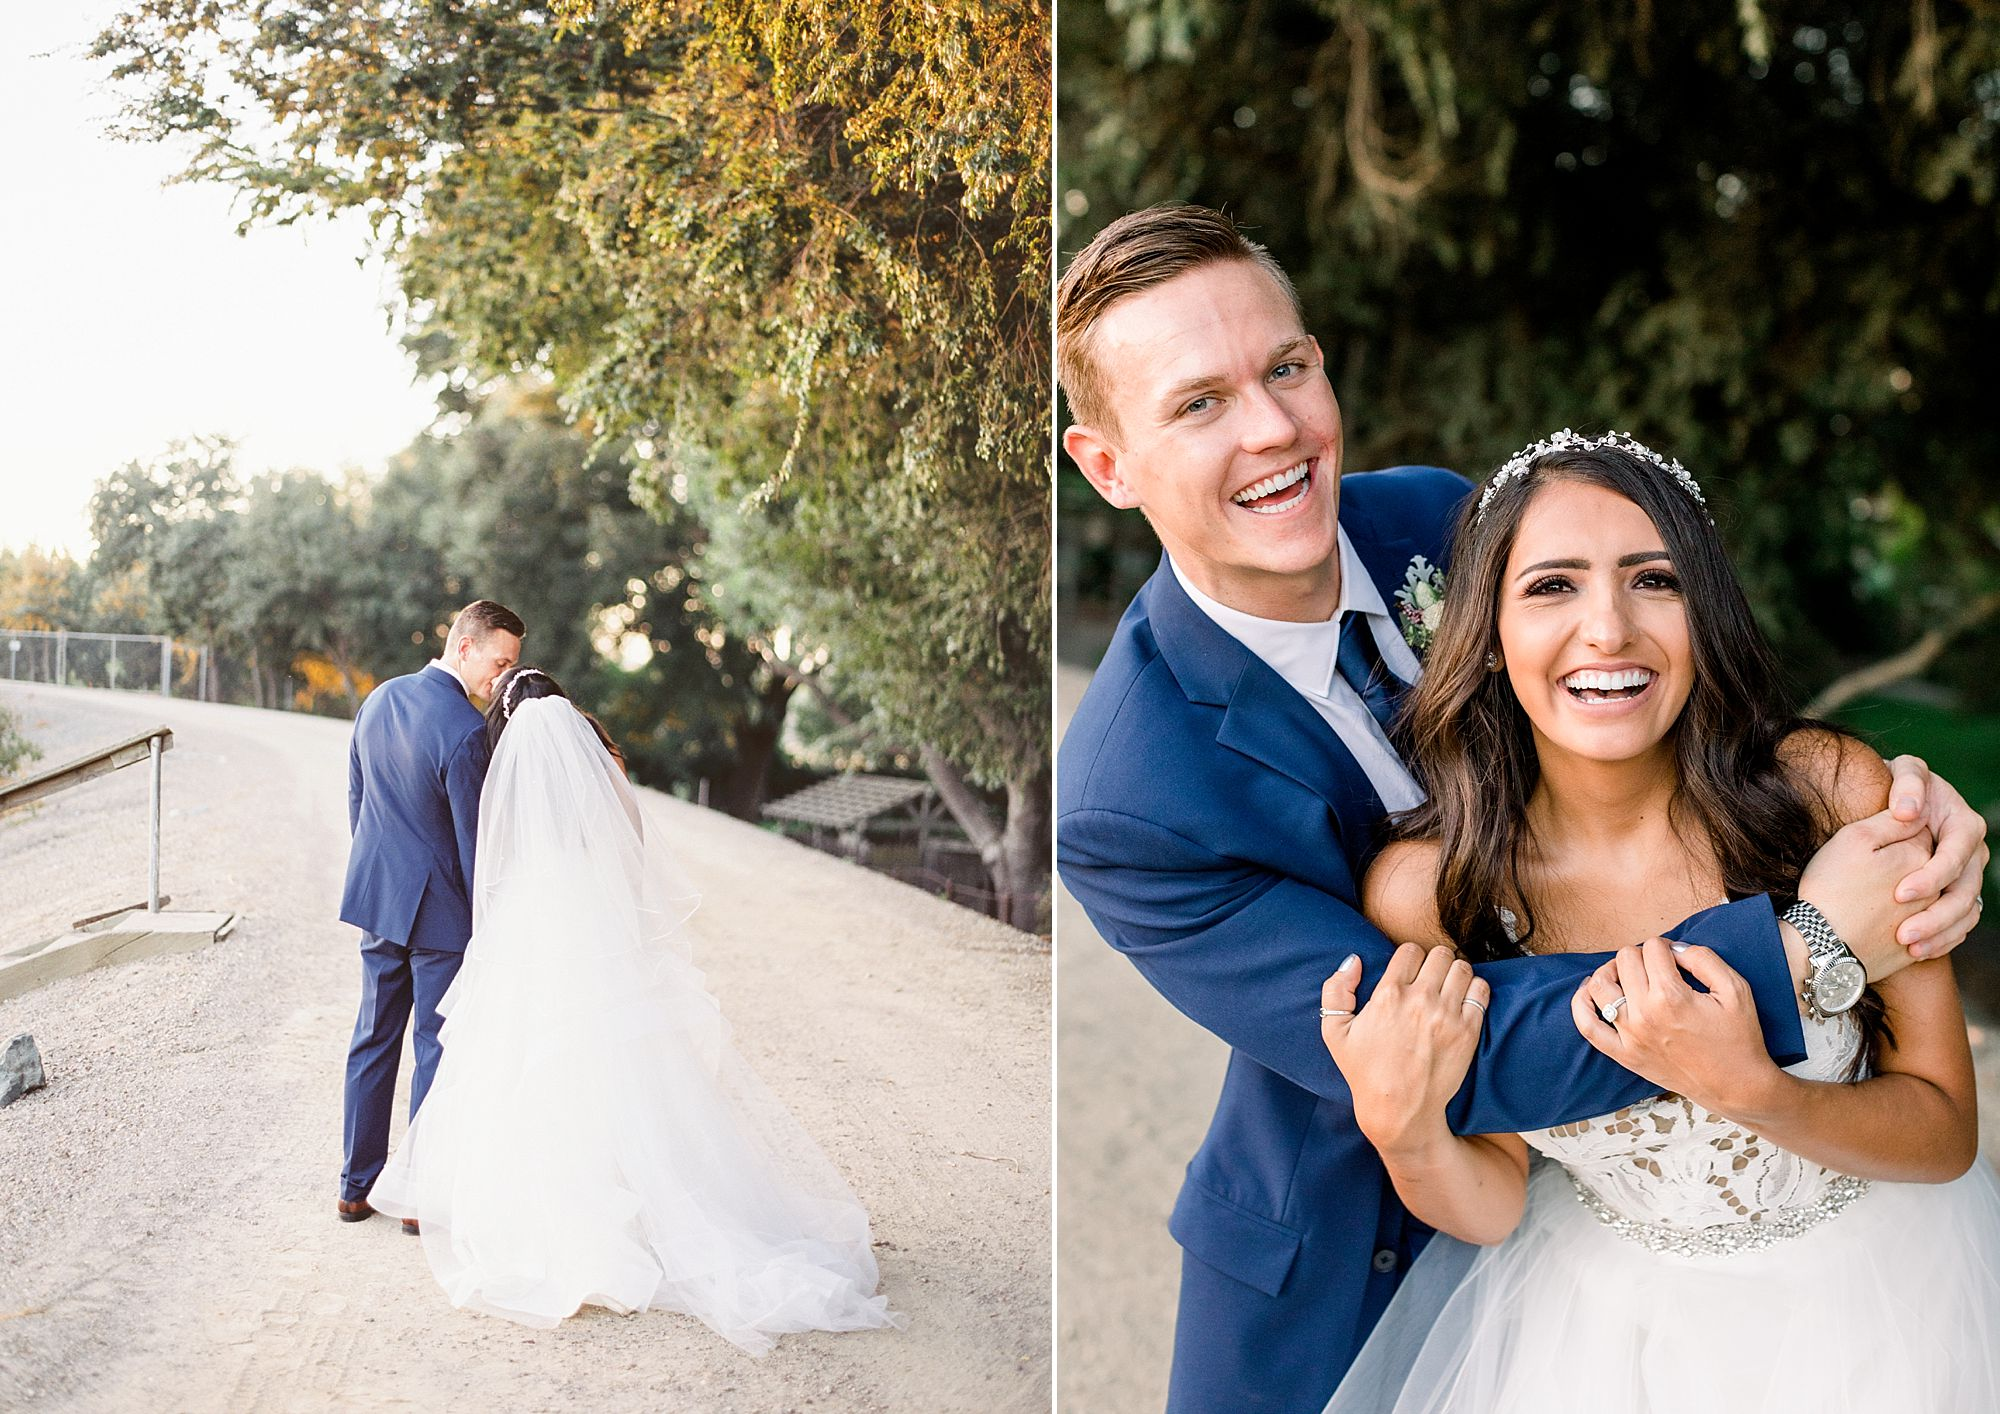 The River Mill Wedding Stockton - Ashley Baumgartner - Stockton Wedding Photographer - Sacramento Wedding Photography - Hybrid and Film Photographer - Sacramento Film Photographer_0054.jpg